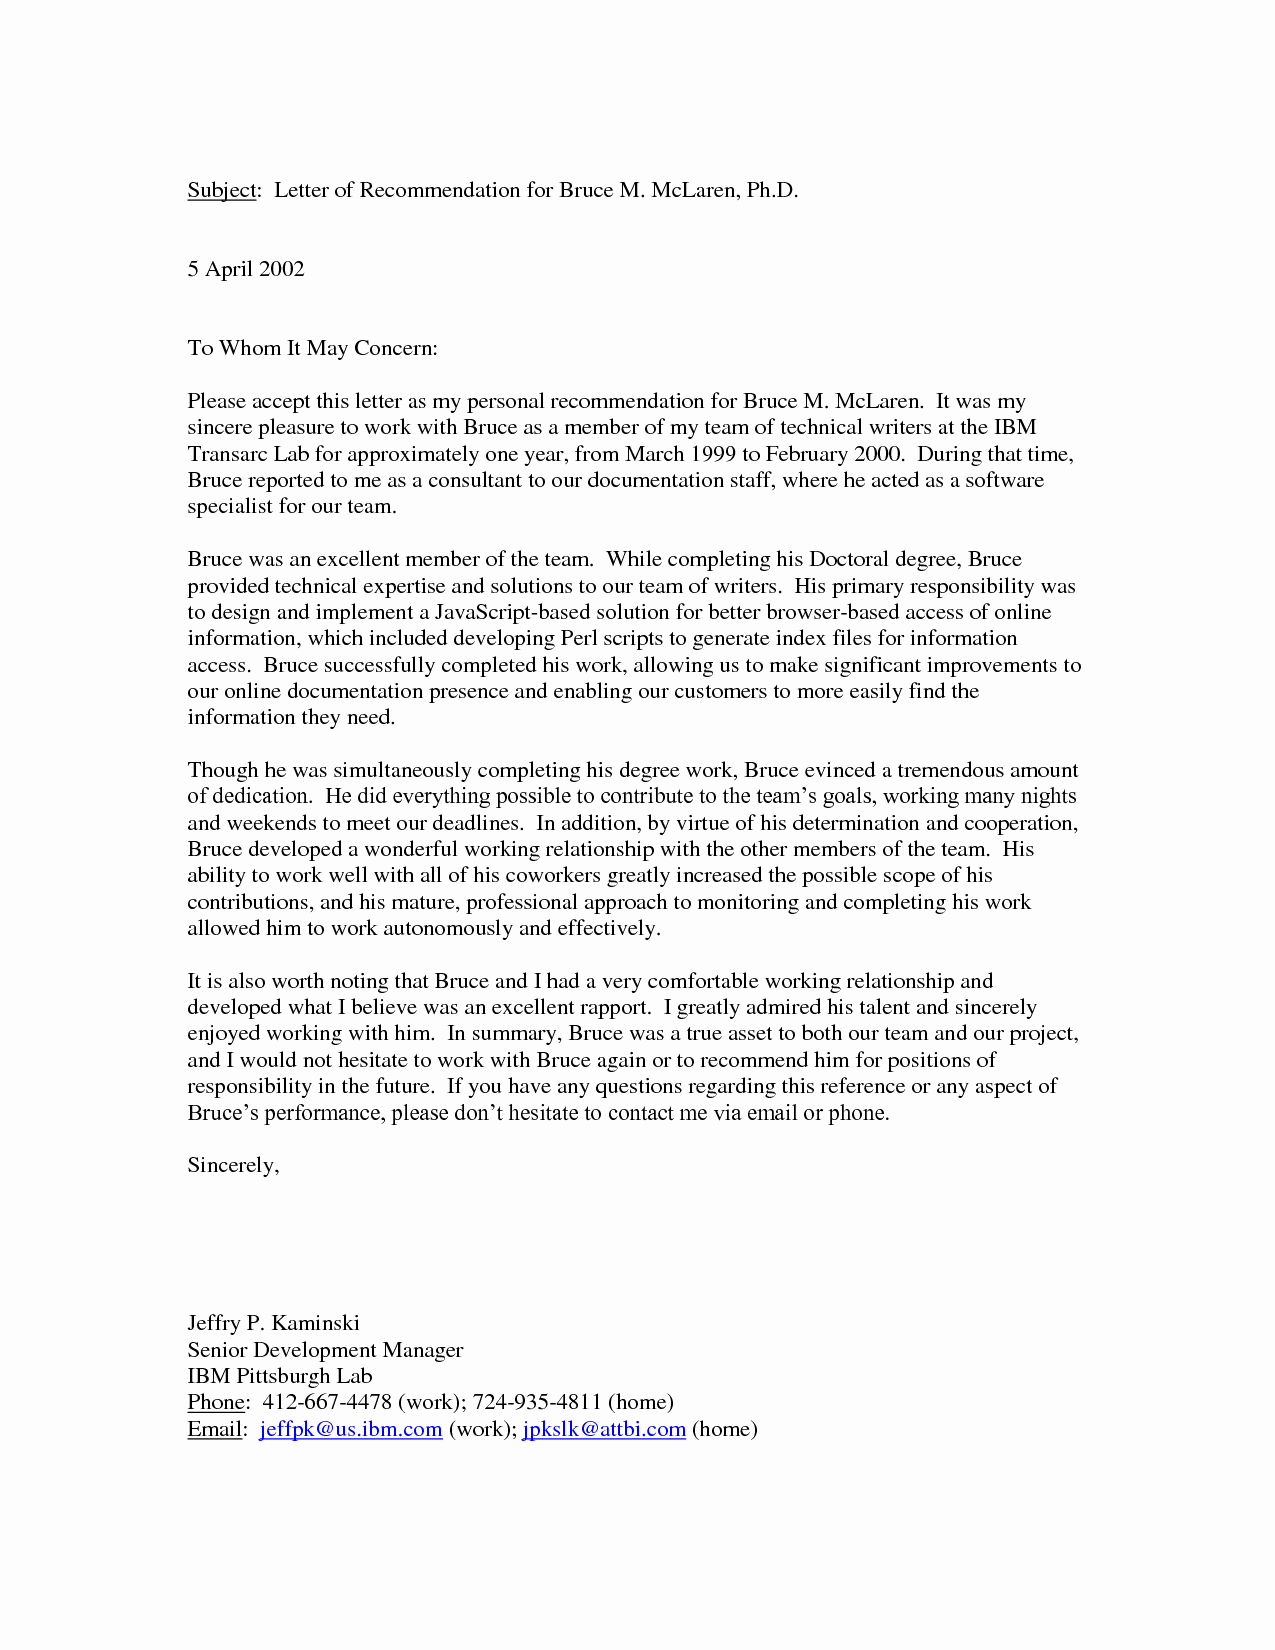 Business Reference Letter Template Luxury Personal Letter Re Mendation